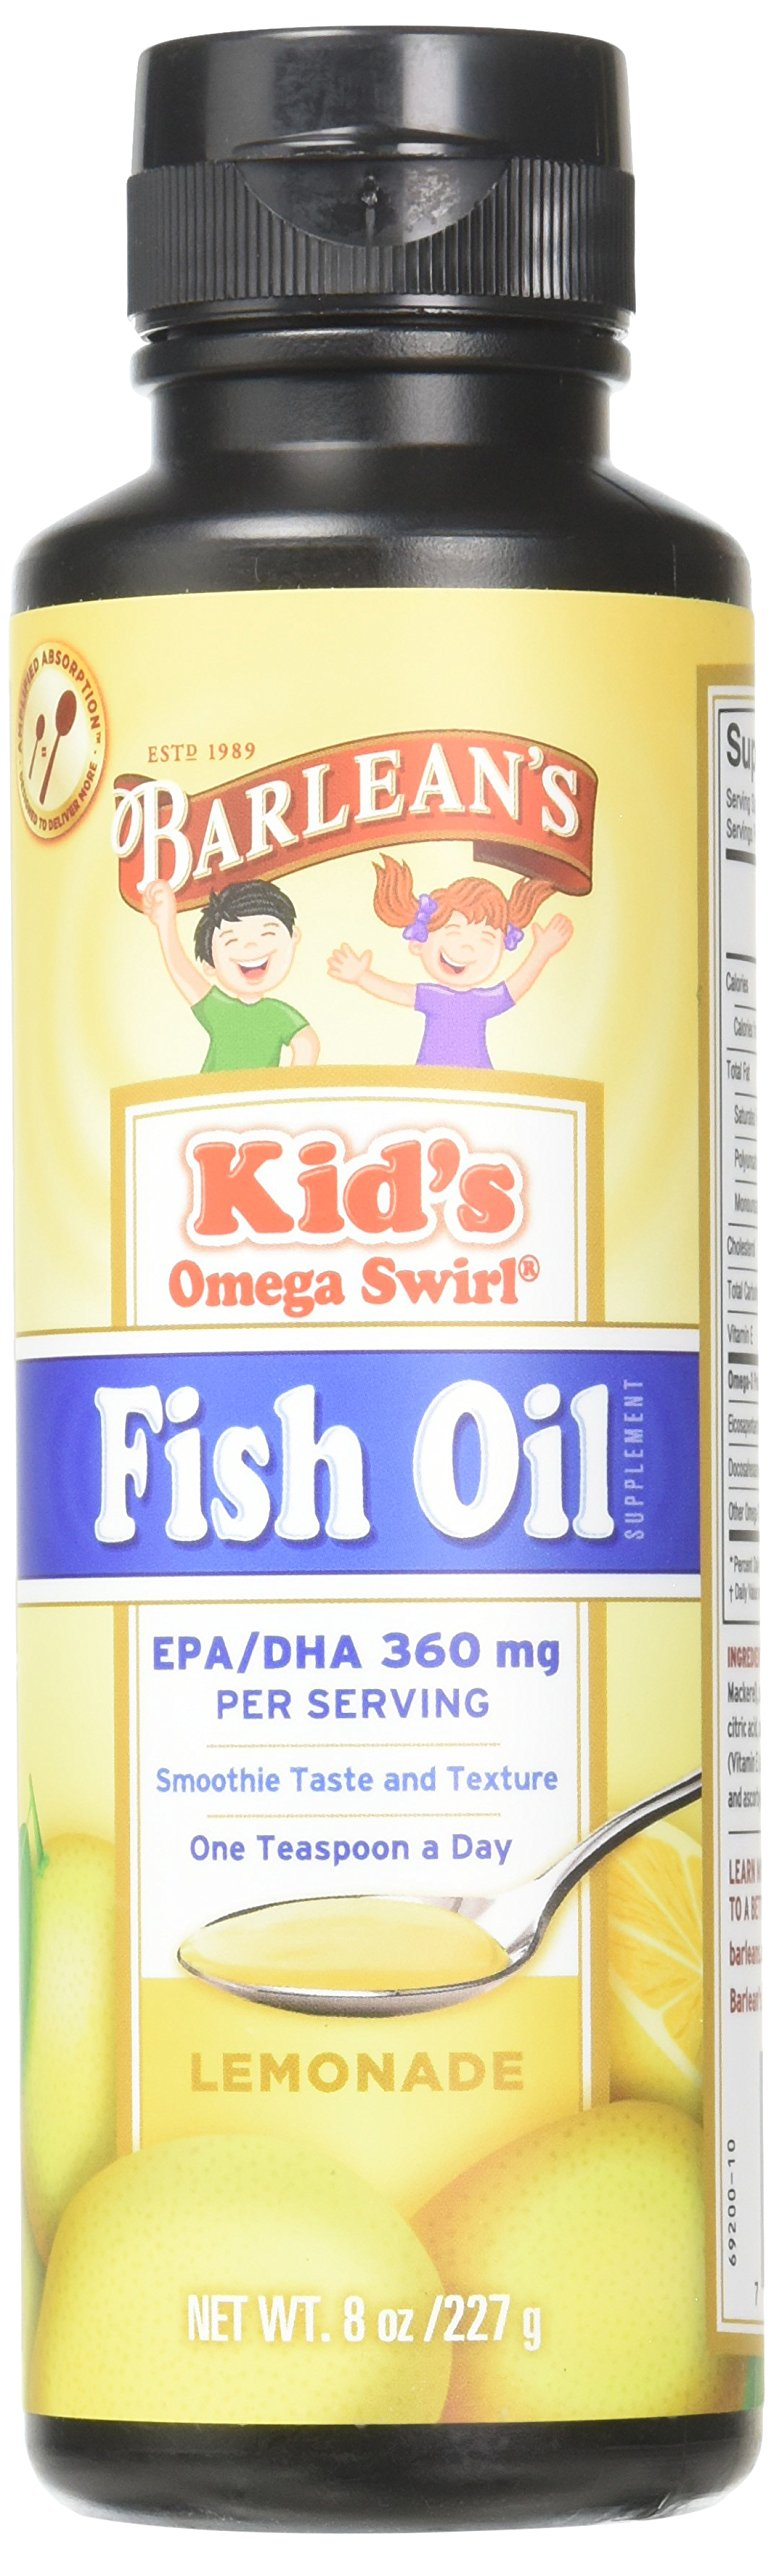 Barlean's Kids Omega Swirl Fish Oil, Lemonade Flavor, 8-oz